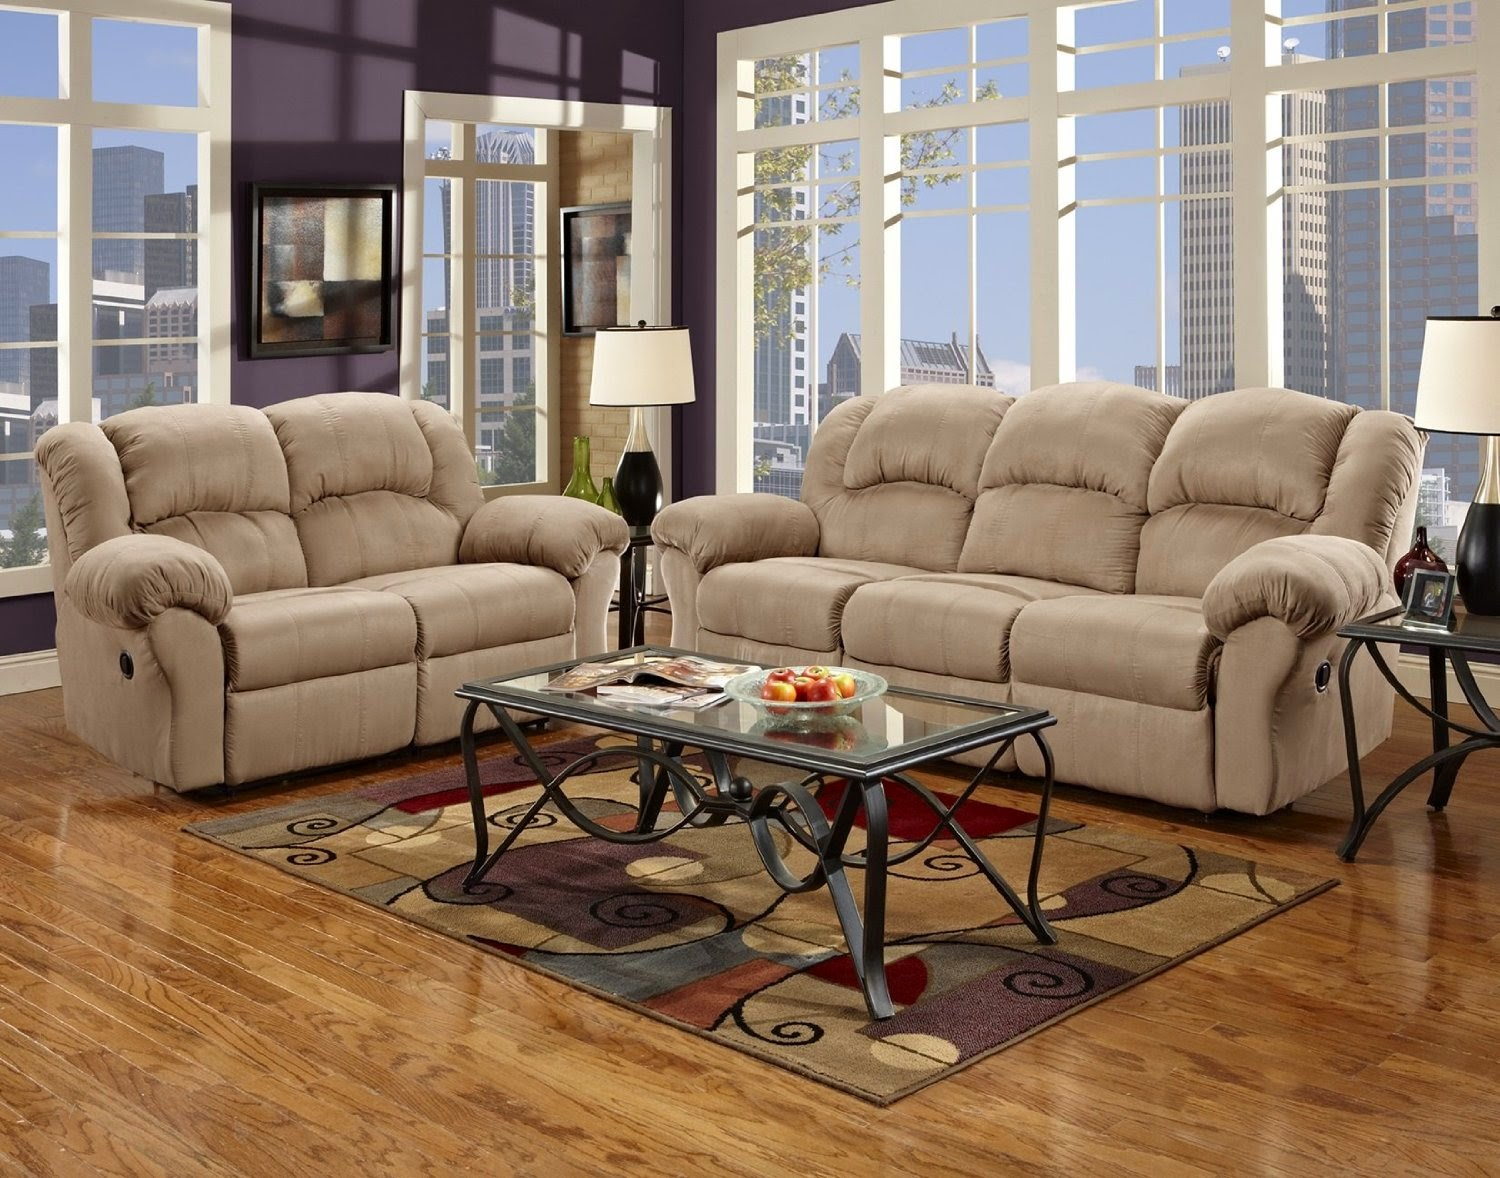 Cheap Reclining Loveseat Sale : Microfiber Reclining Sofa And Loveseat